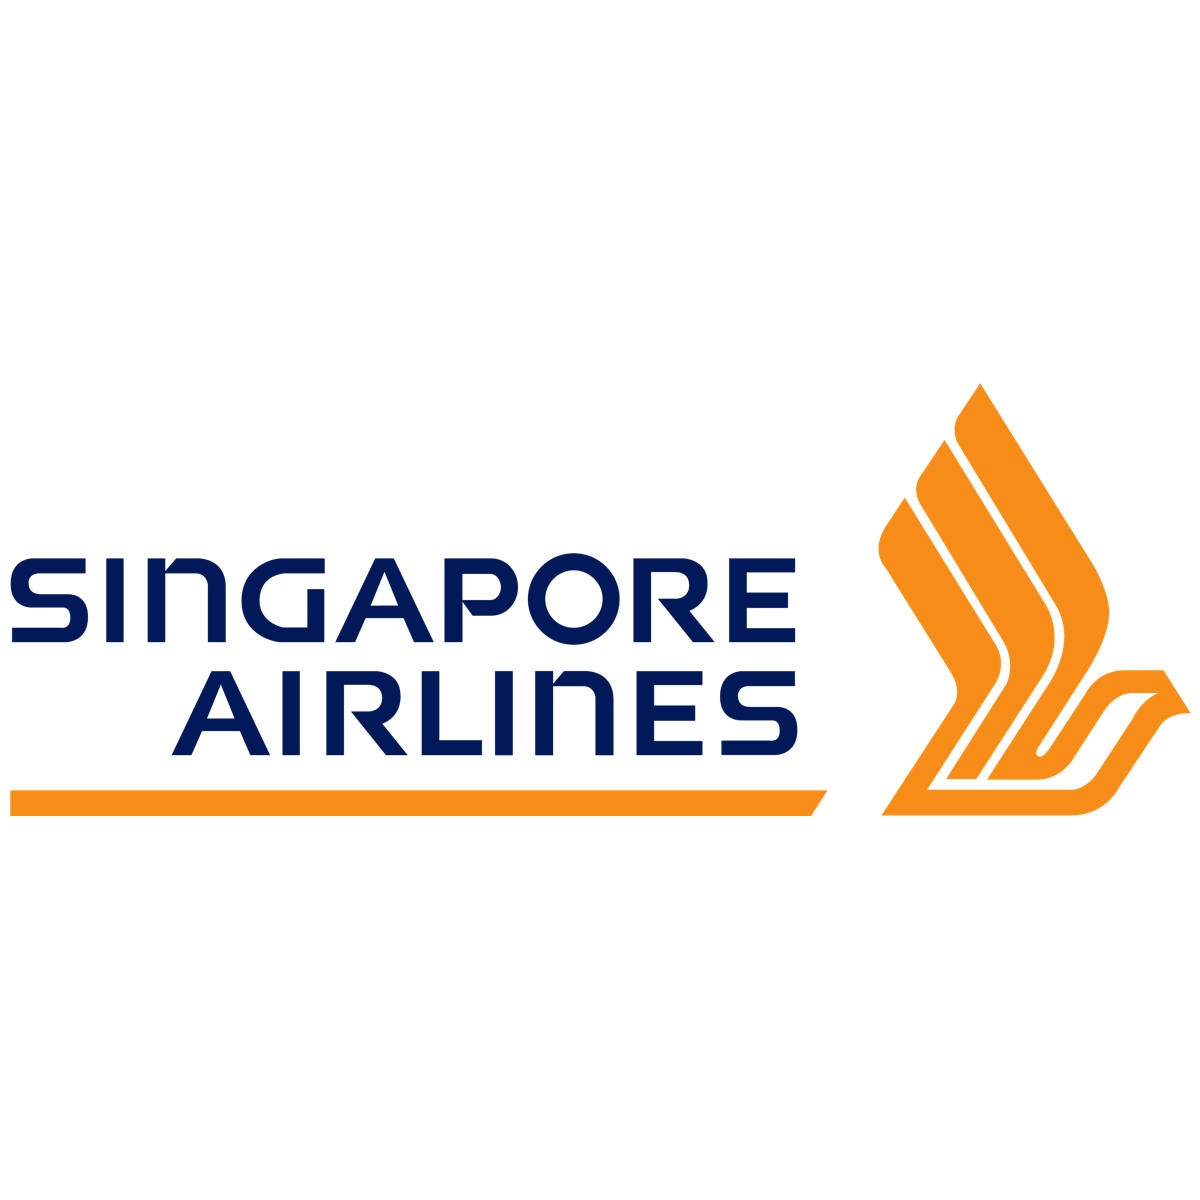 Singapore Airlines (SIA SP) - UOB Kay Hian 2017-03-08: Lower Downside Risk; Newsflow Could Aid Upward Momentum